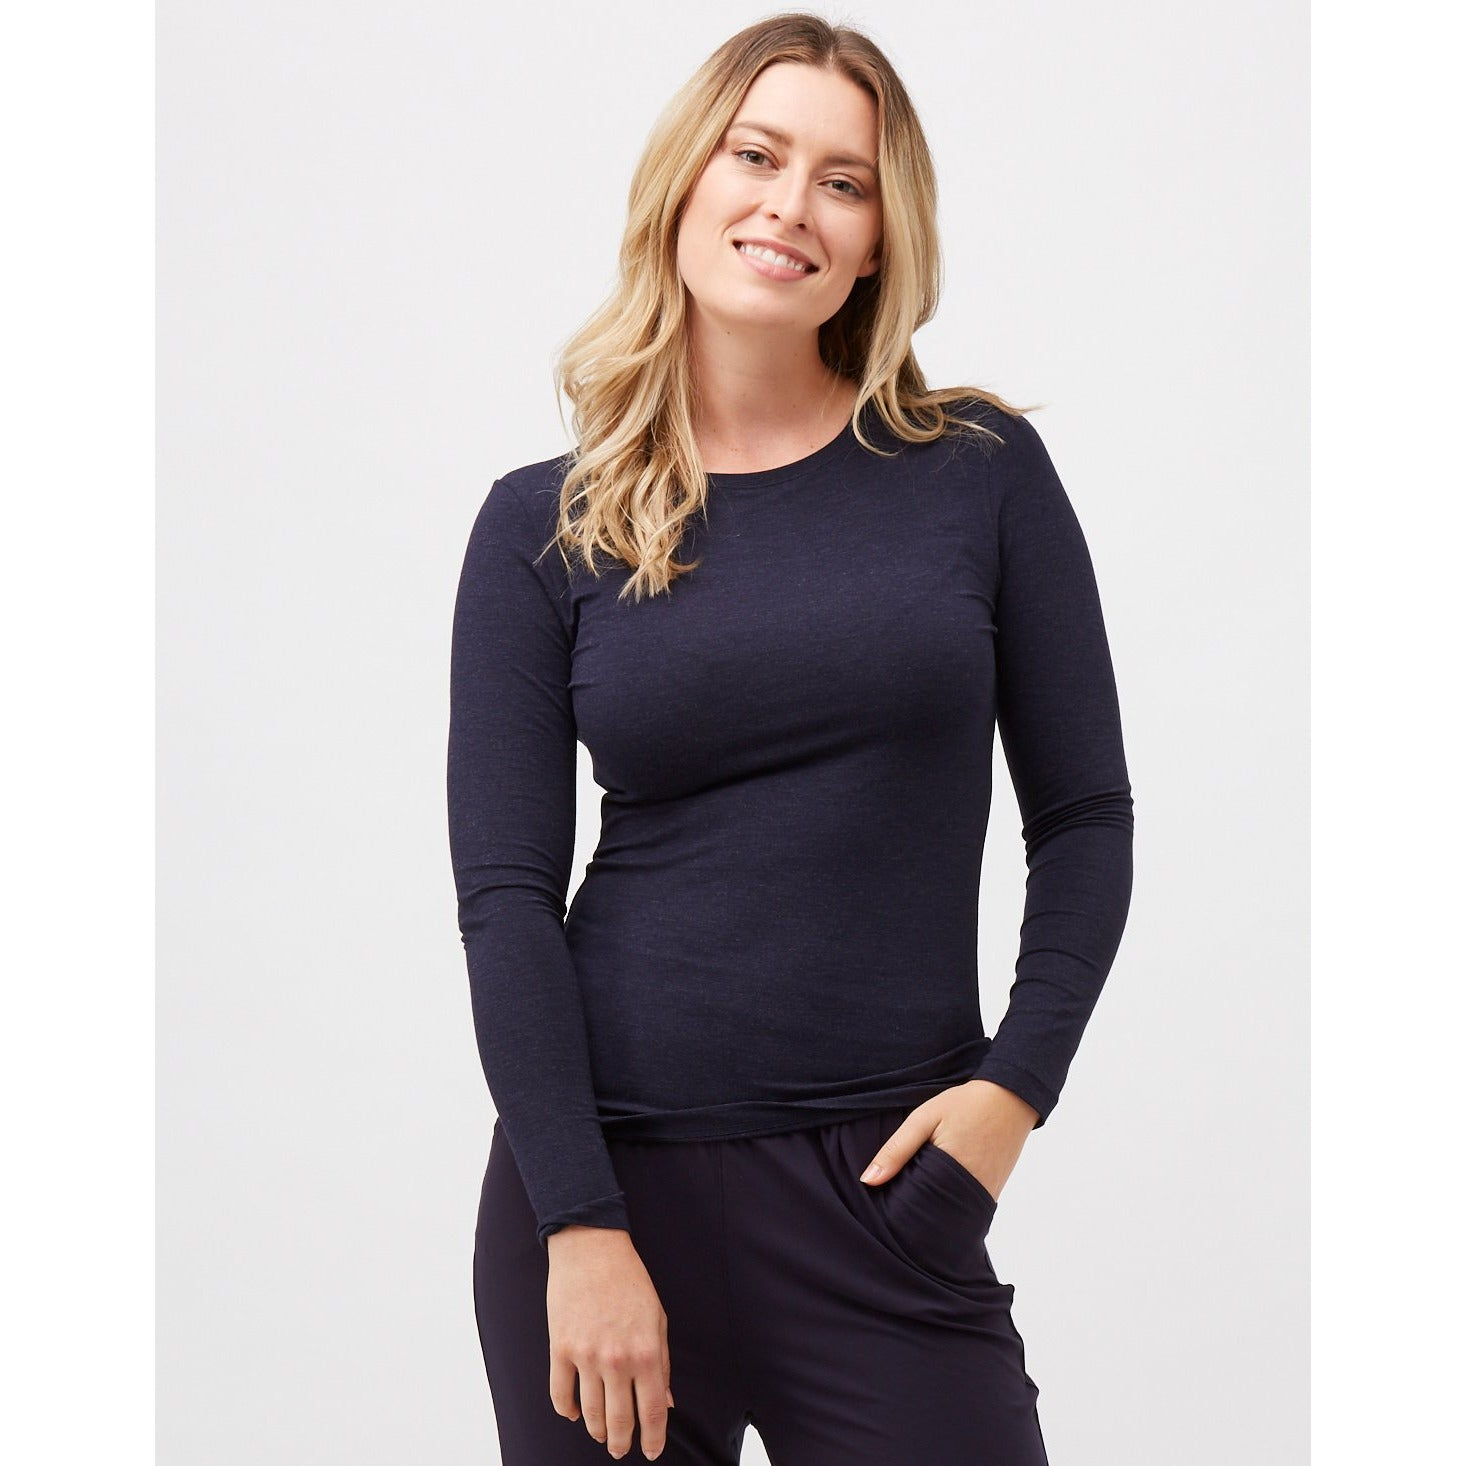 Tani Round neck Long sleeve fitted Tee Top in Midnight Marle